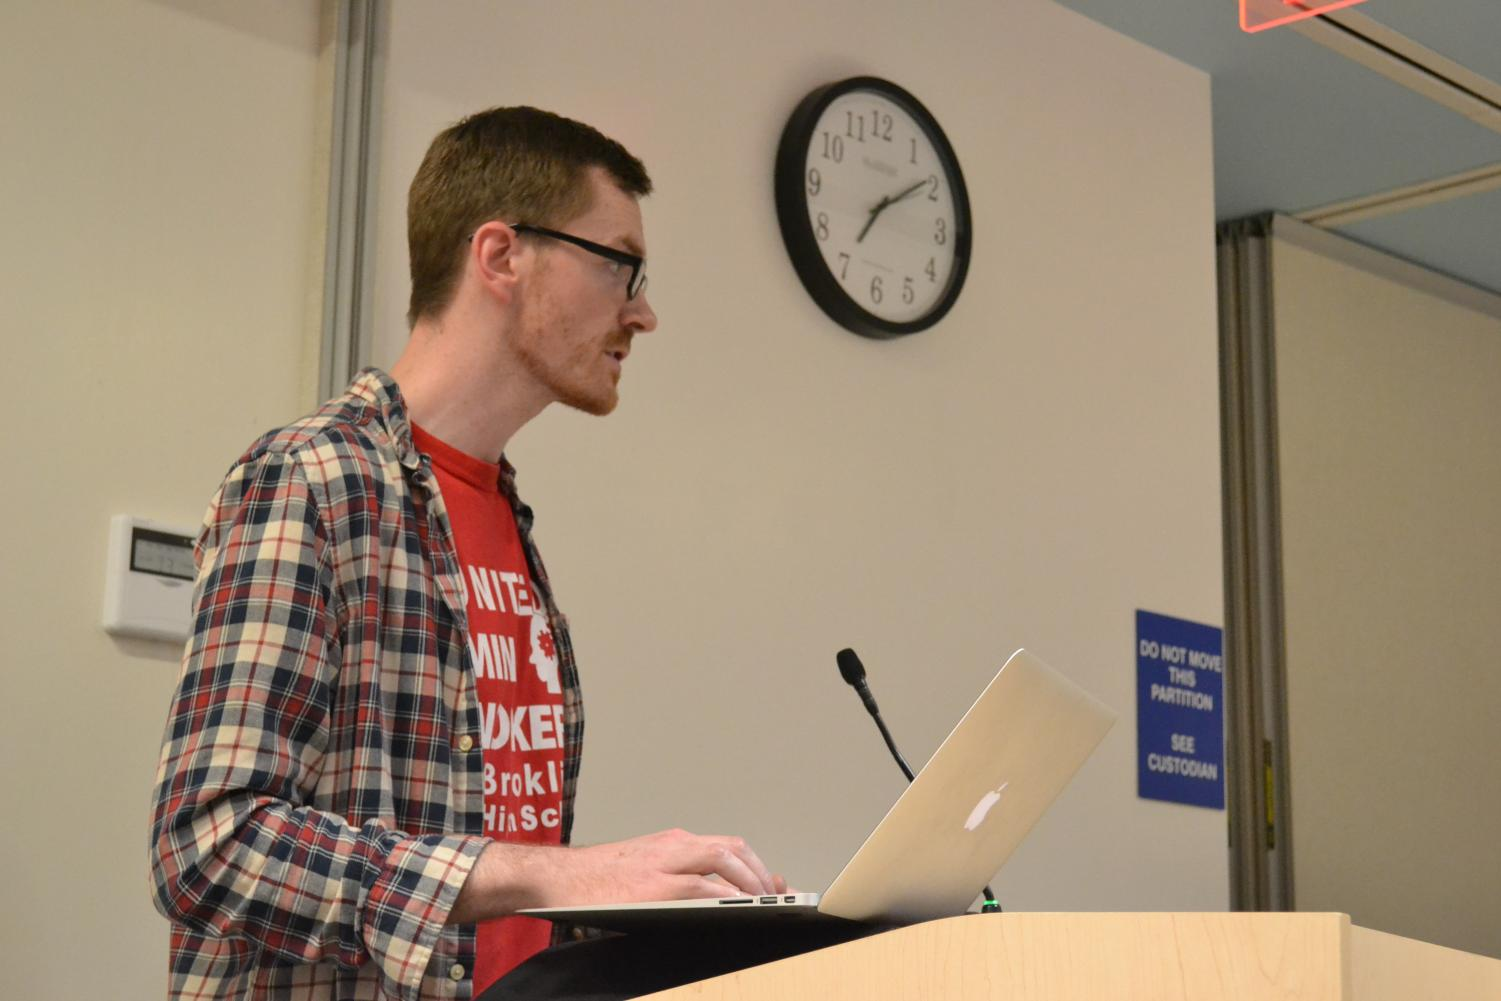 Math teacher David Knott speaks at a School Committee meeting. According to an MIT tool, paraprofessionals earn less than the living wage in the county.